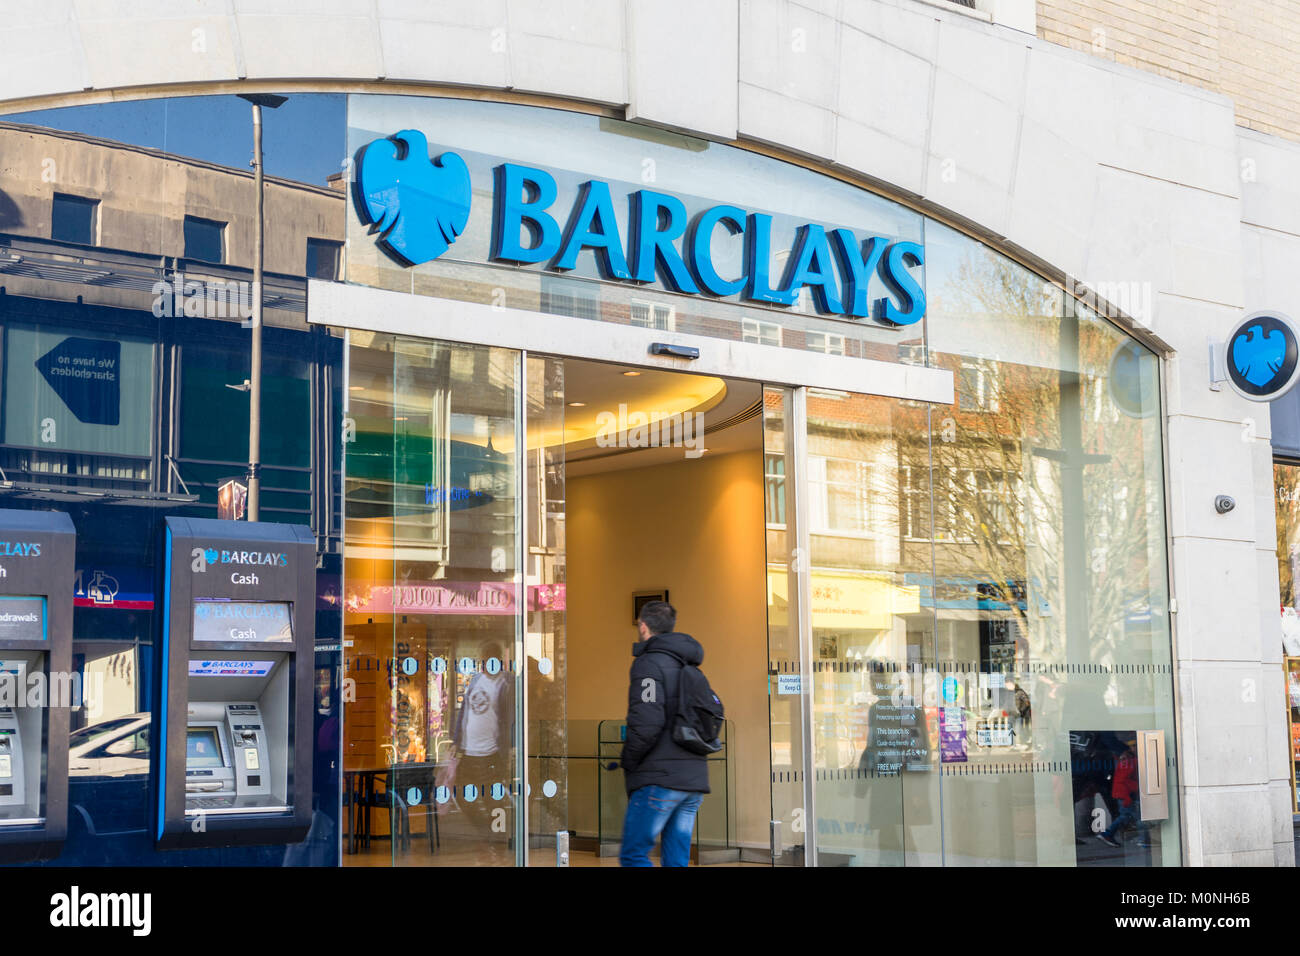 A person entering a Barclays bank branch on a High Street in England 2018, UK - Stock Image